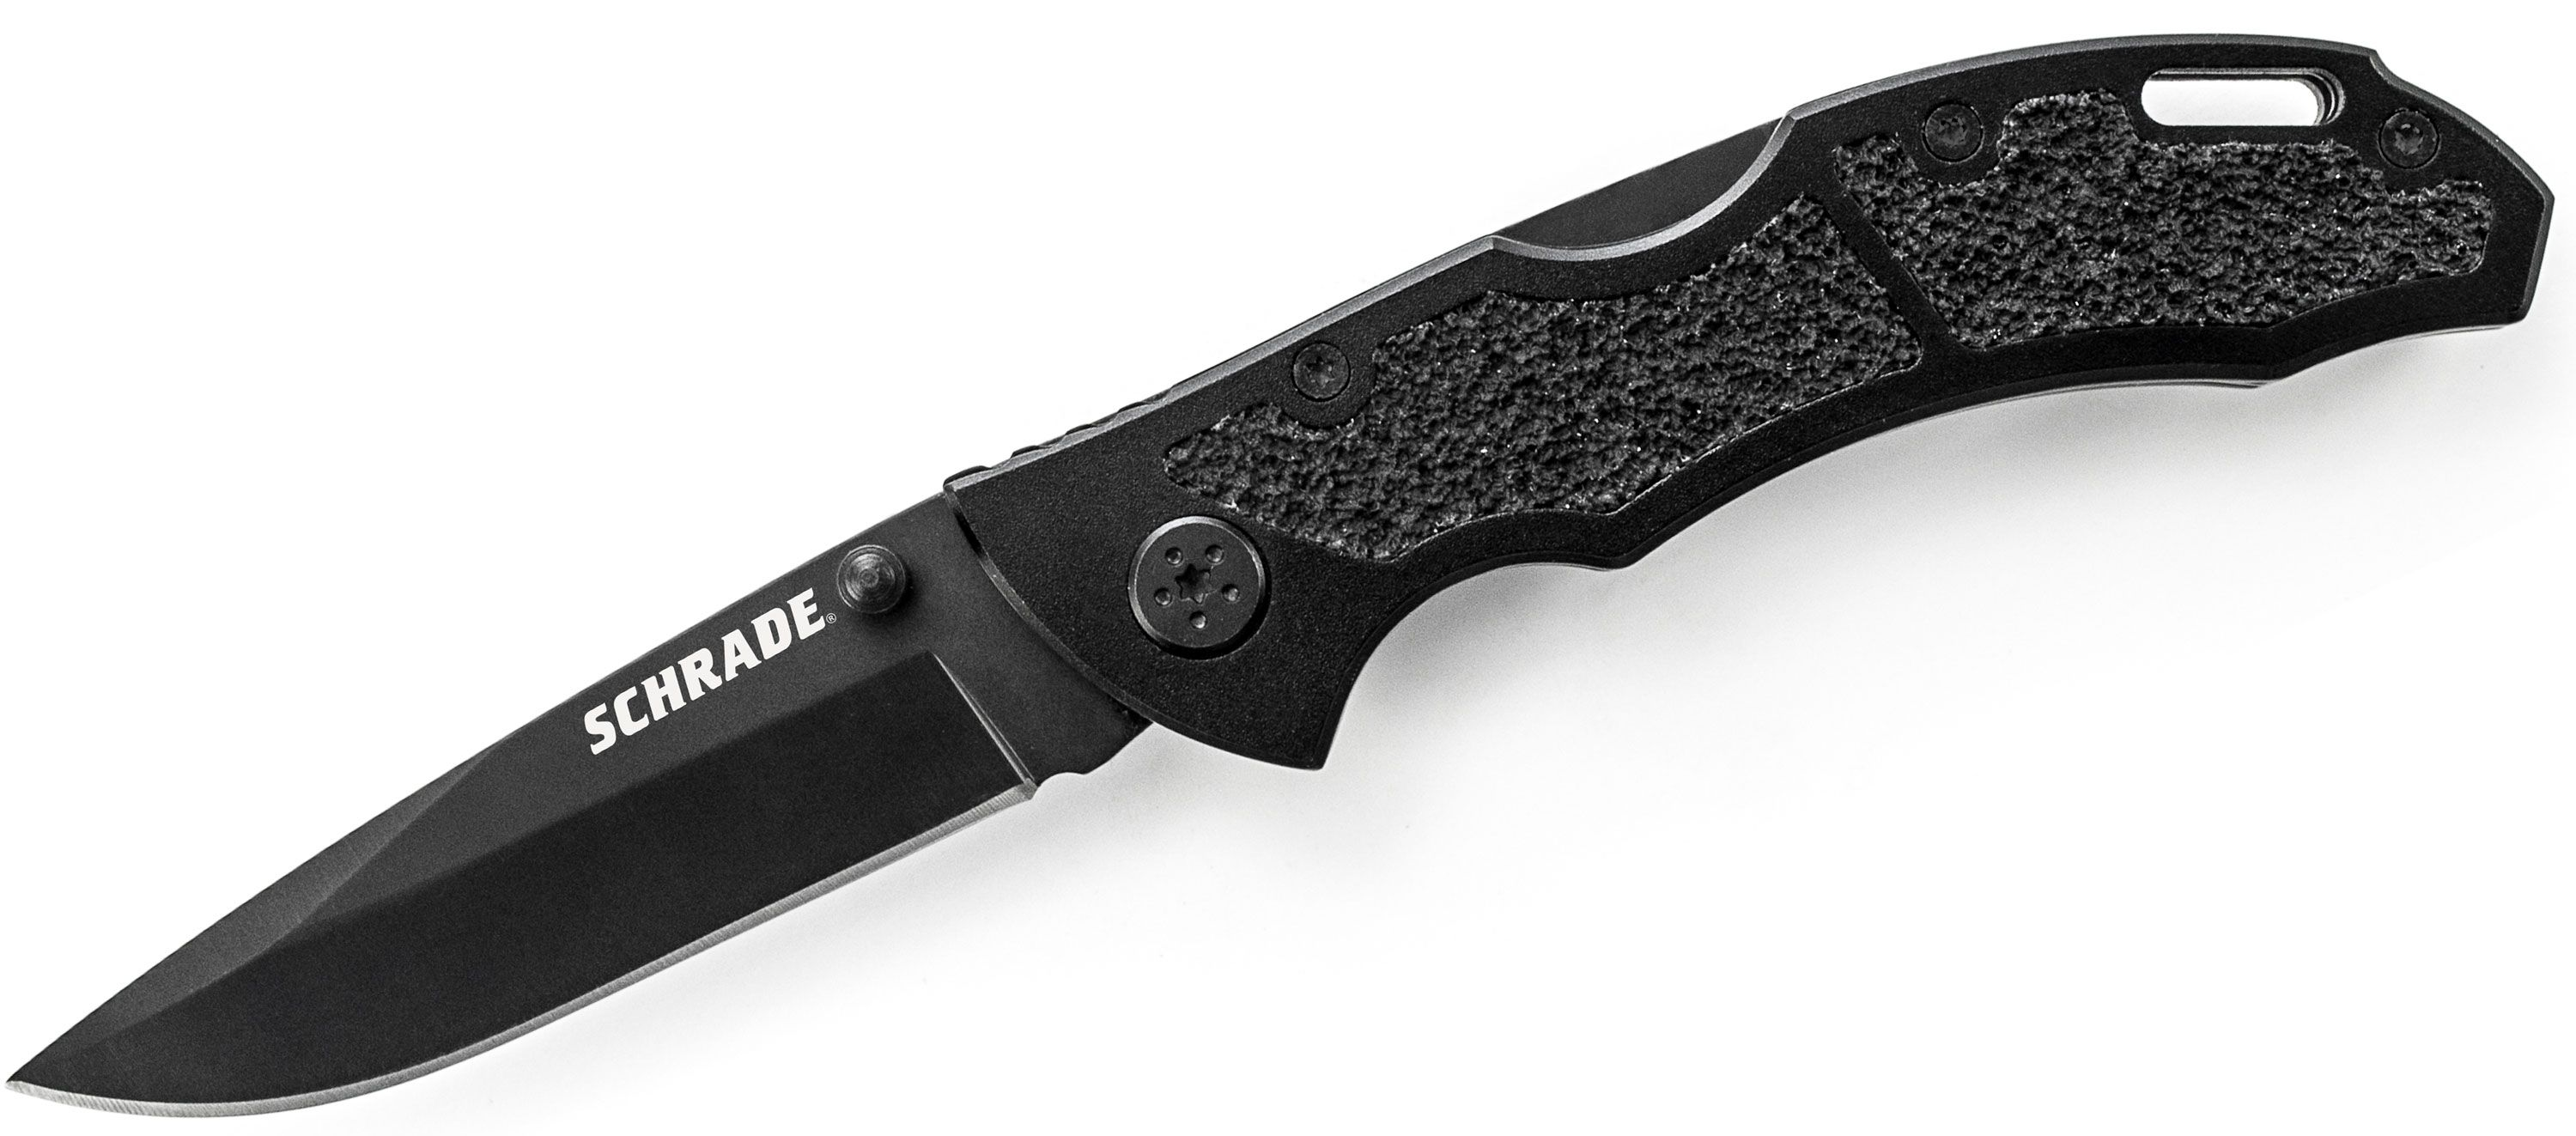 Schrade Utility Folding Knife 3.1 inch 9Cr14MoV Plain Drop Point Blade, Black Aluminum Handles